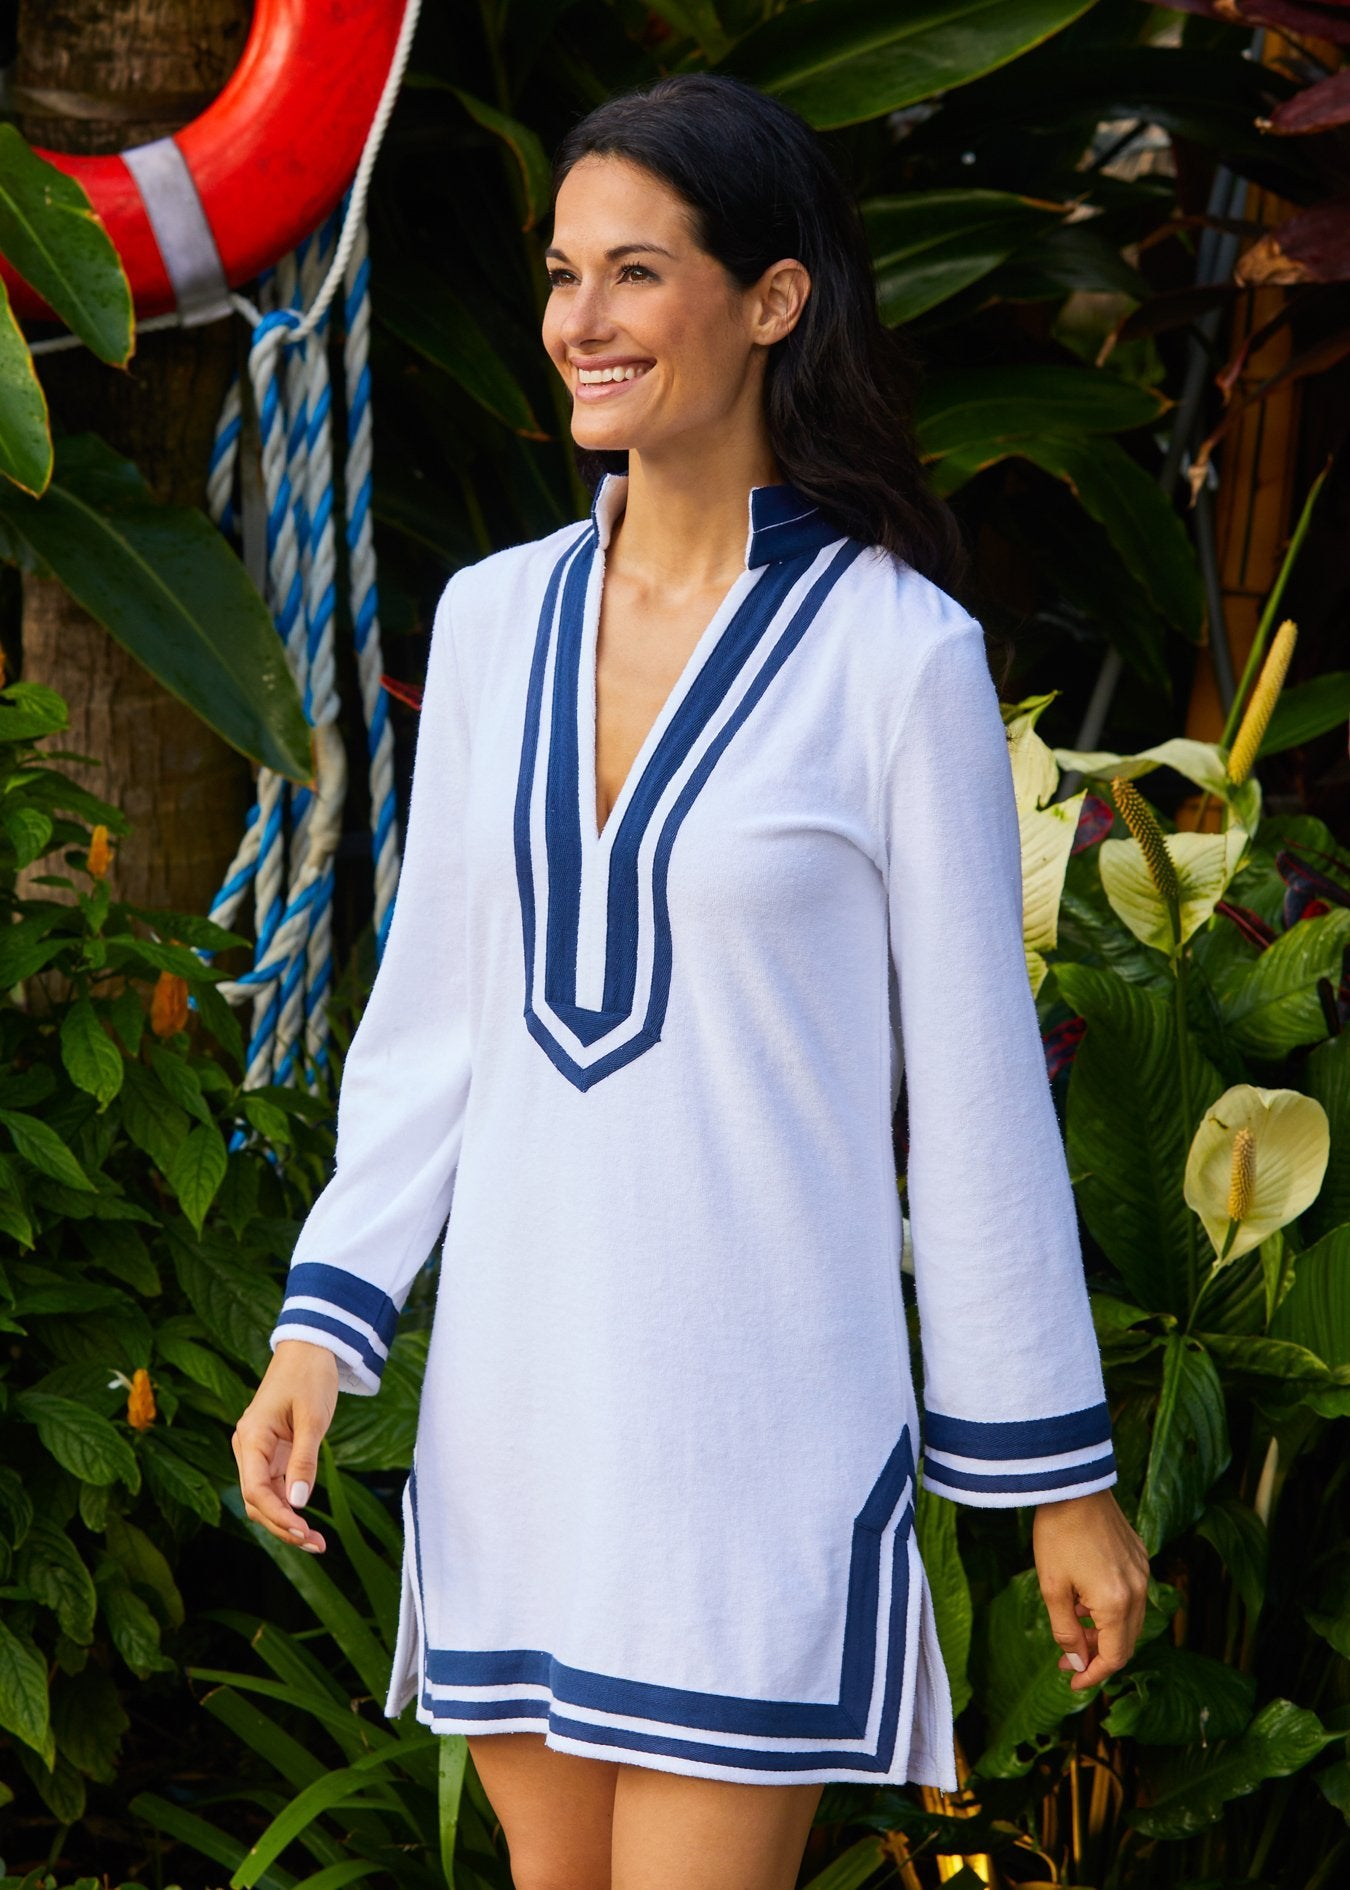 Woman wearing White/Navy Terry Cover Up with 50 UPF